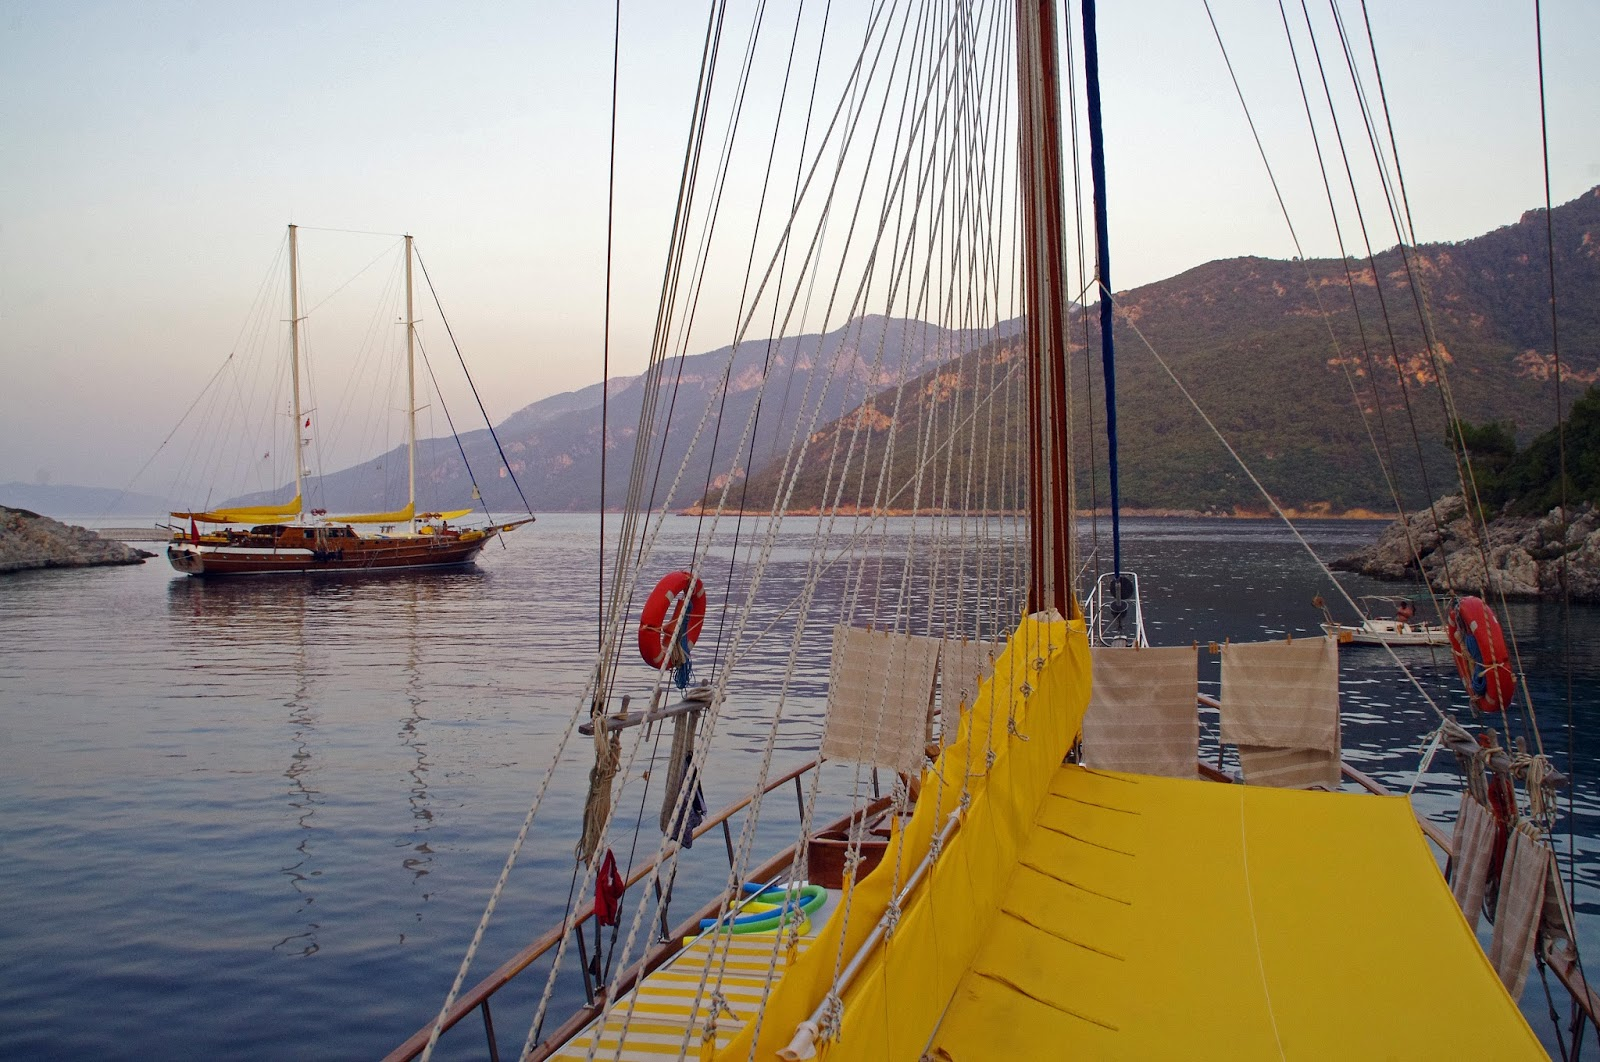 Sailing in Turkey with Neyzen